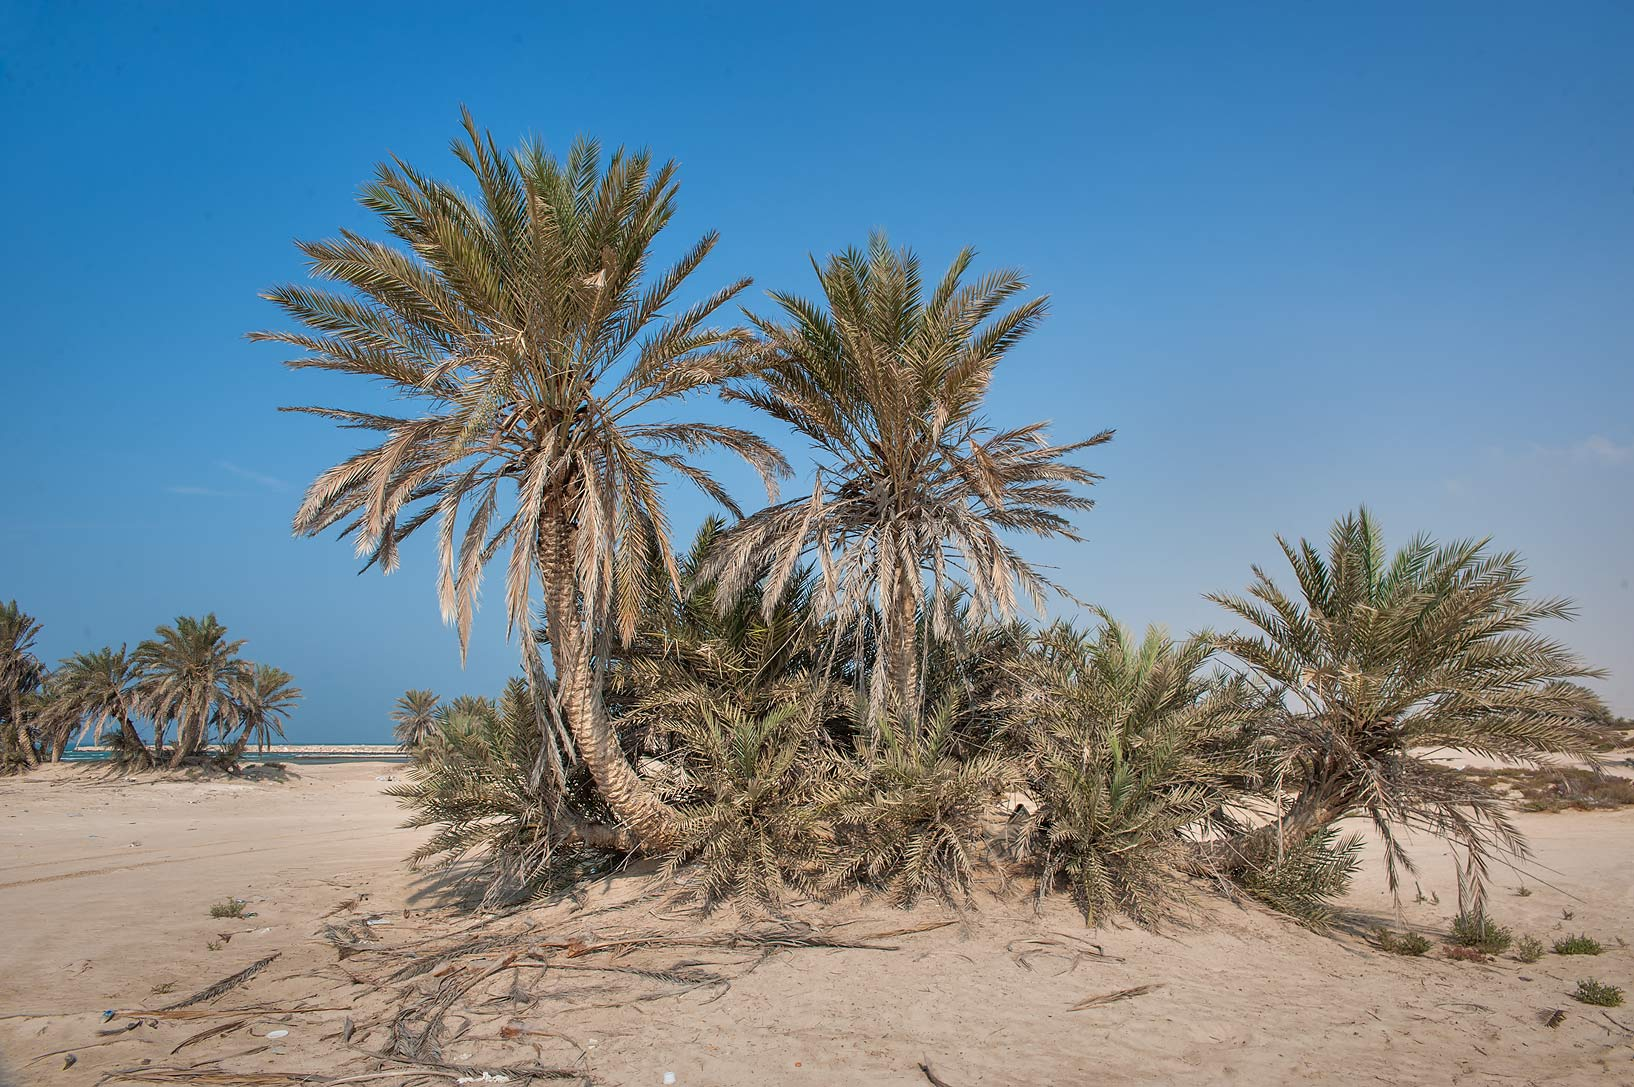 Date palms (Phoenix dactylifera, local name...near Umm Bab in south-western Qatar